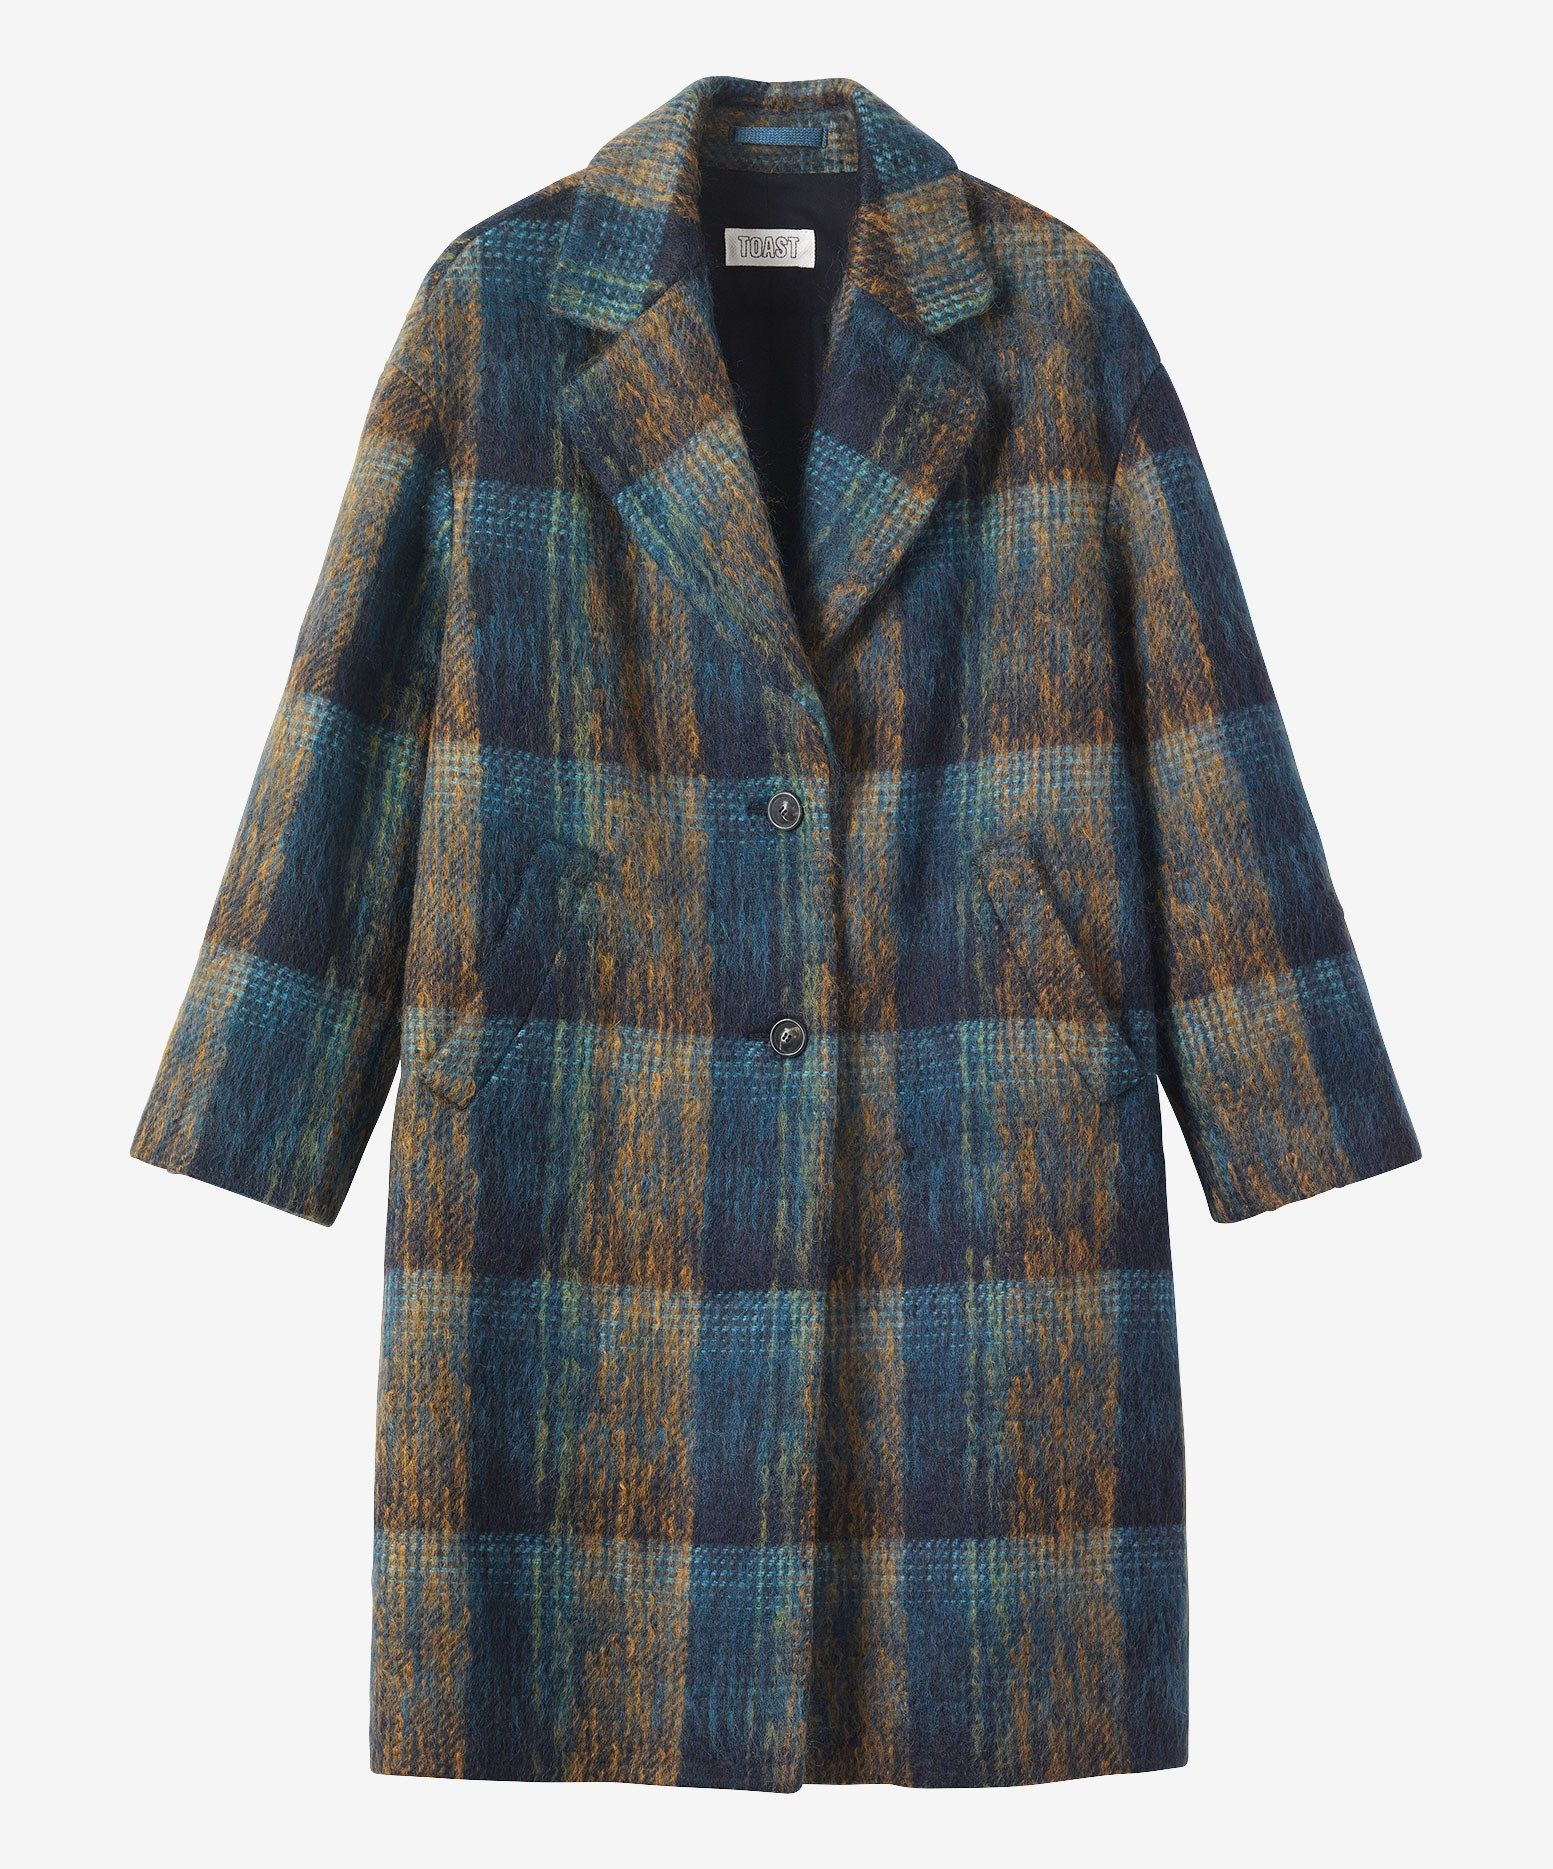 BRUSHED WOOL MOHAIR COAT | Hazy, plaid coat in a very soft, Scottish-